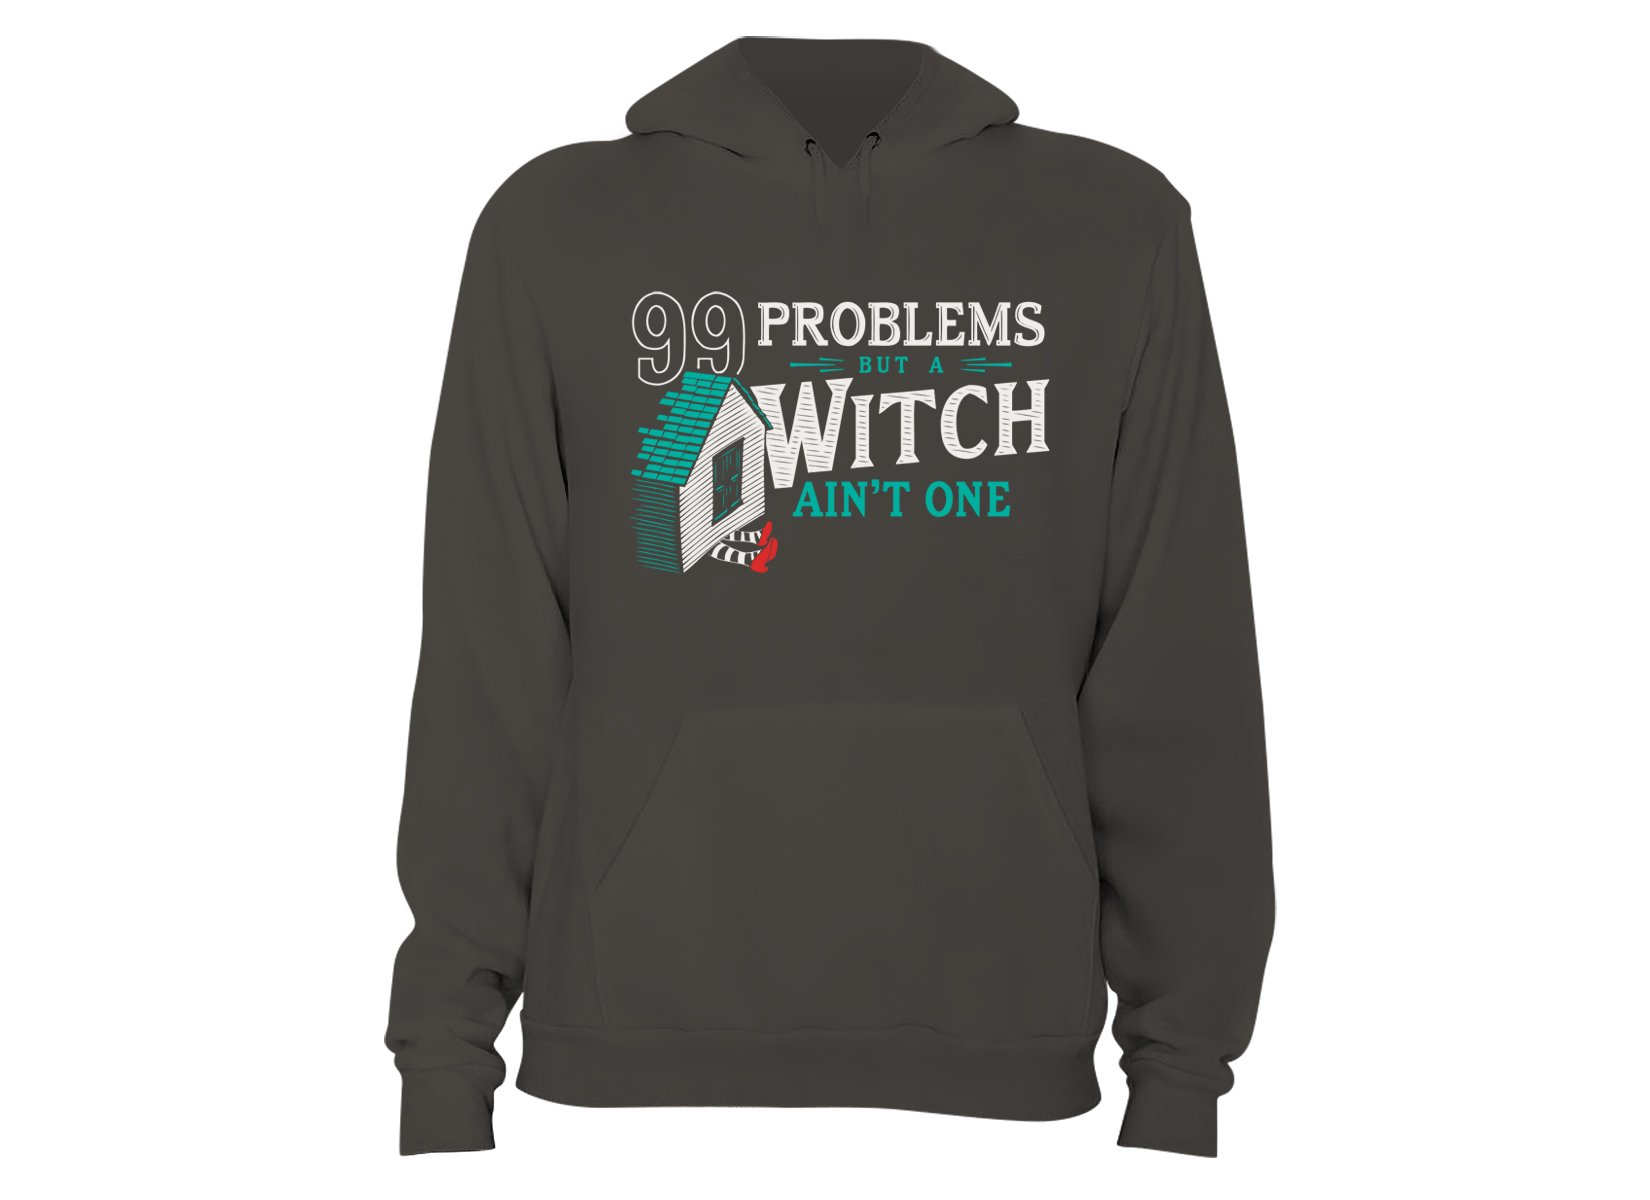 99 Problems But A Witch Ain't One on Hoodie